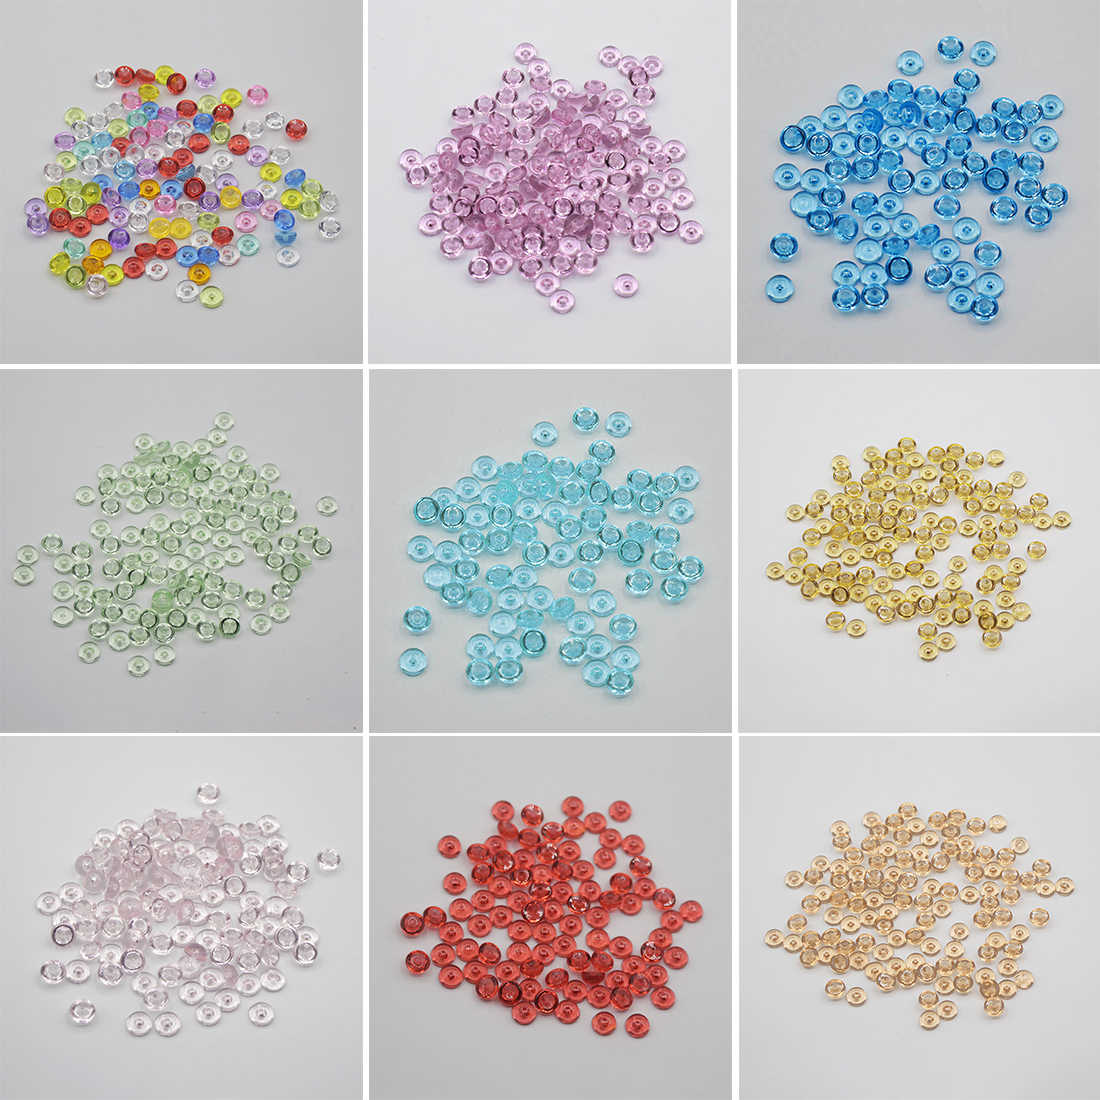 500pcs/Bag Fishbowl Beads DIY Slime Decoration 7mm Diameter For Craft Tools Home Decoration with 11 Colors